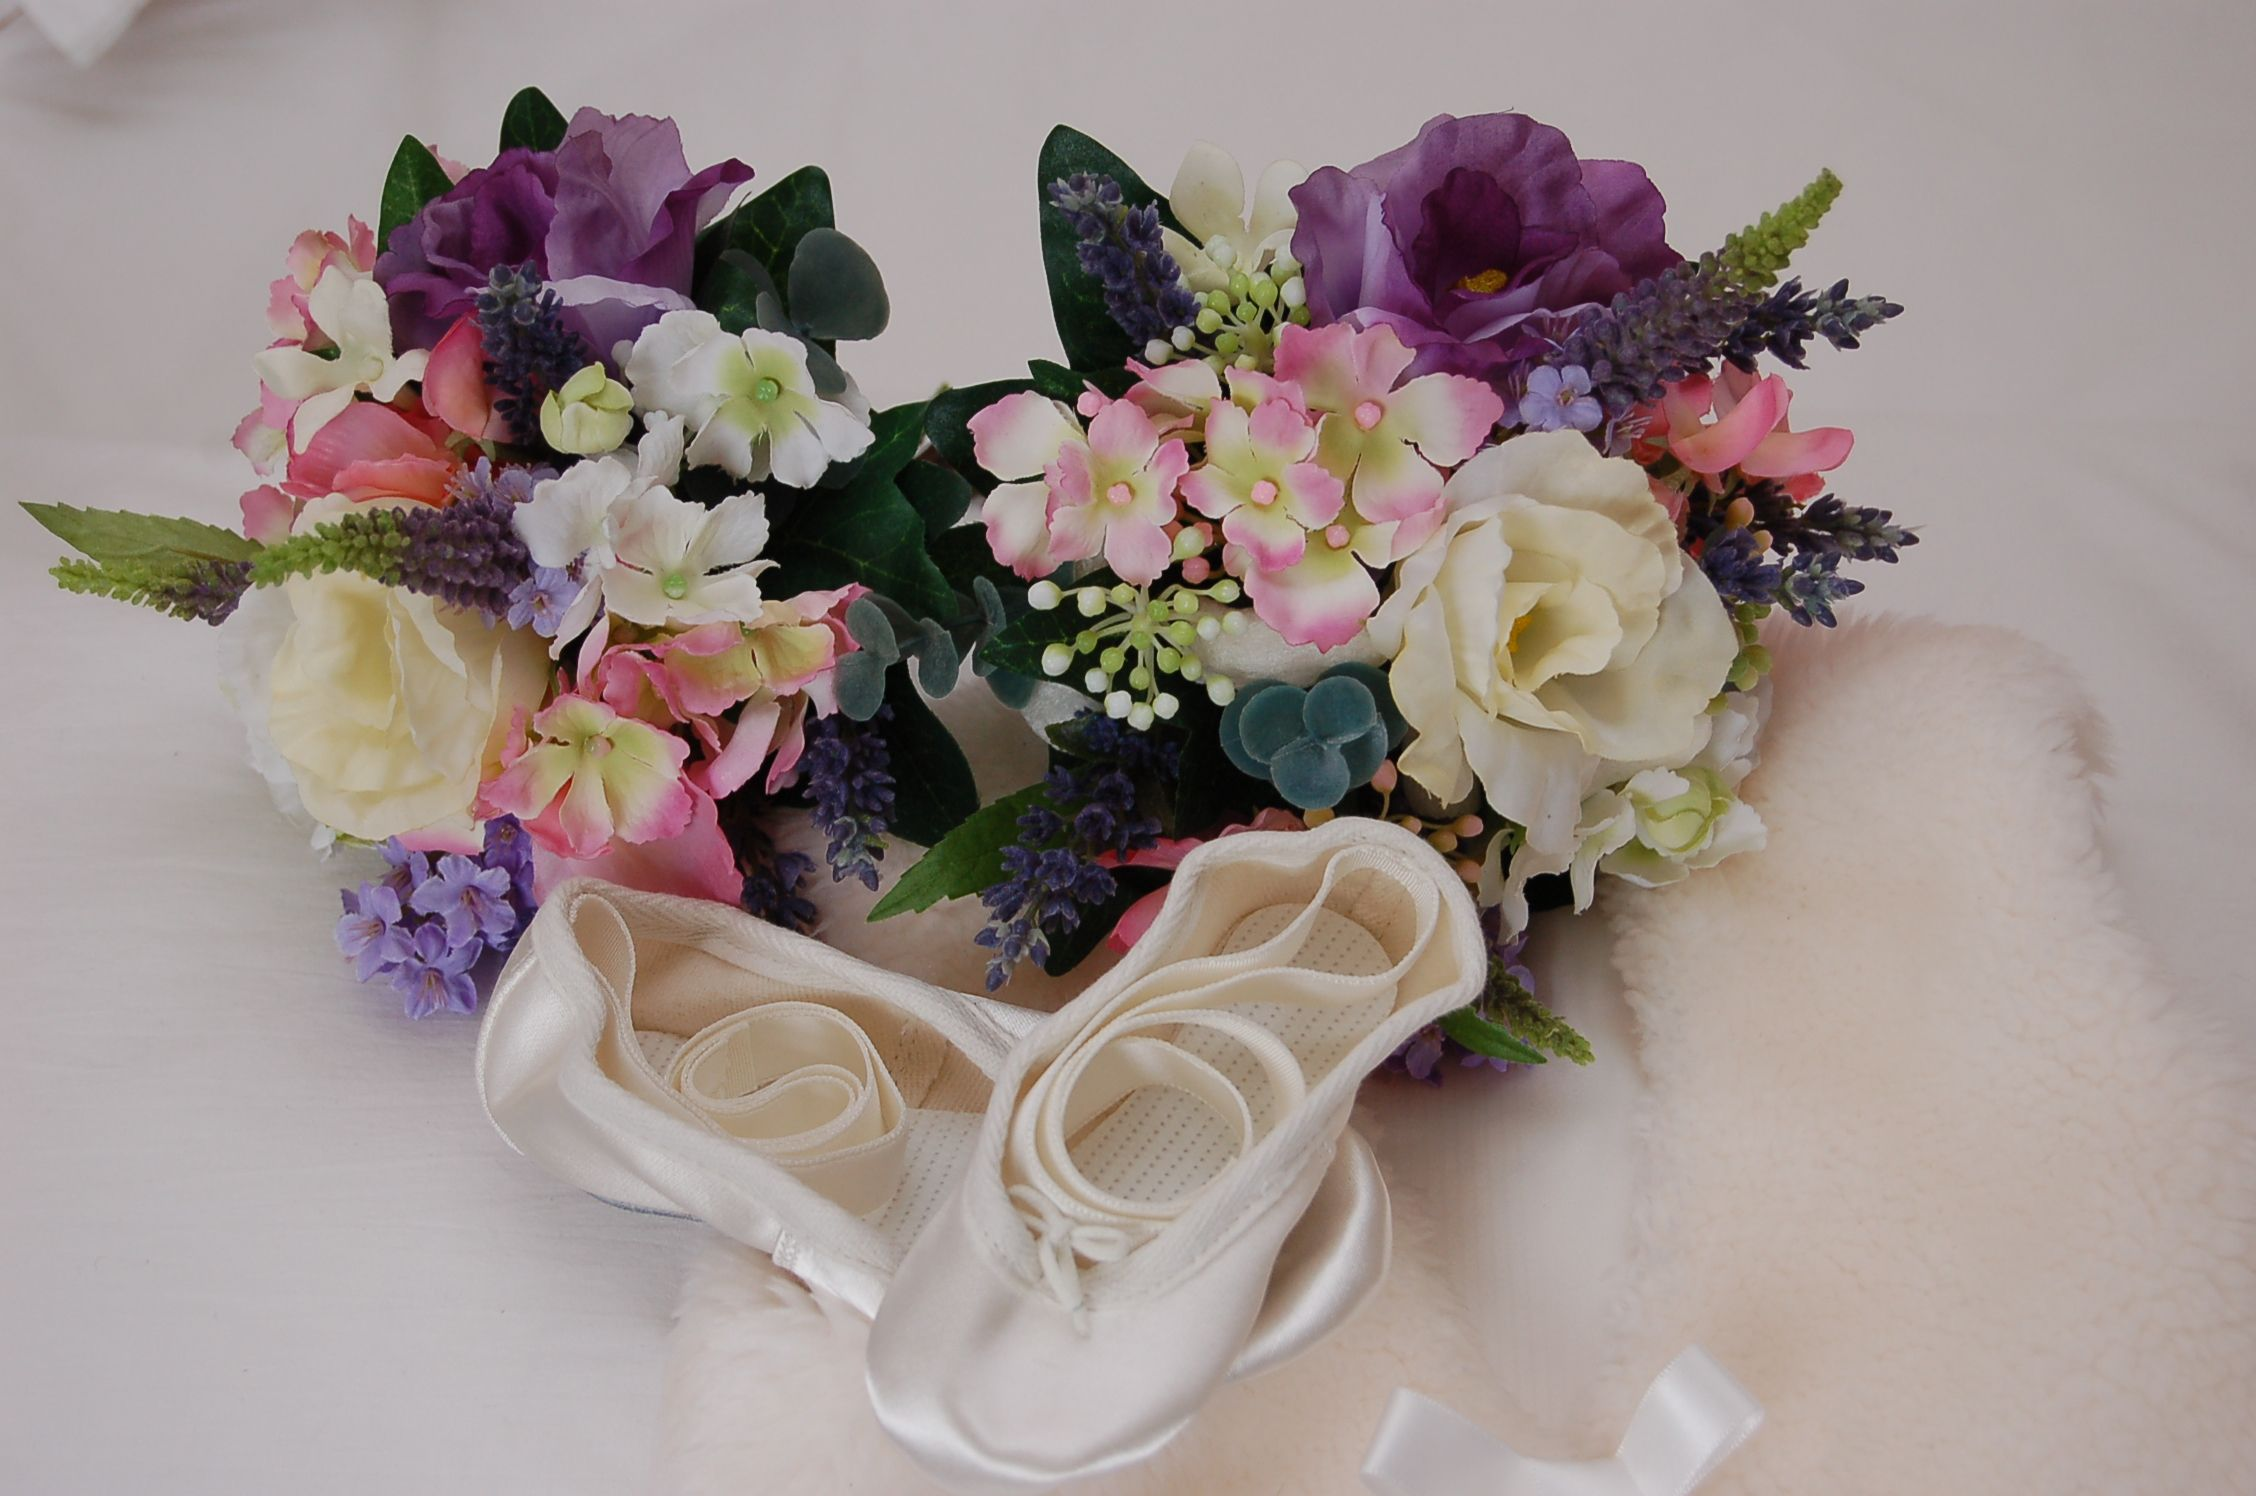 Good Quality Artificial Flowers Are Good For Flower Girls As They